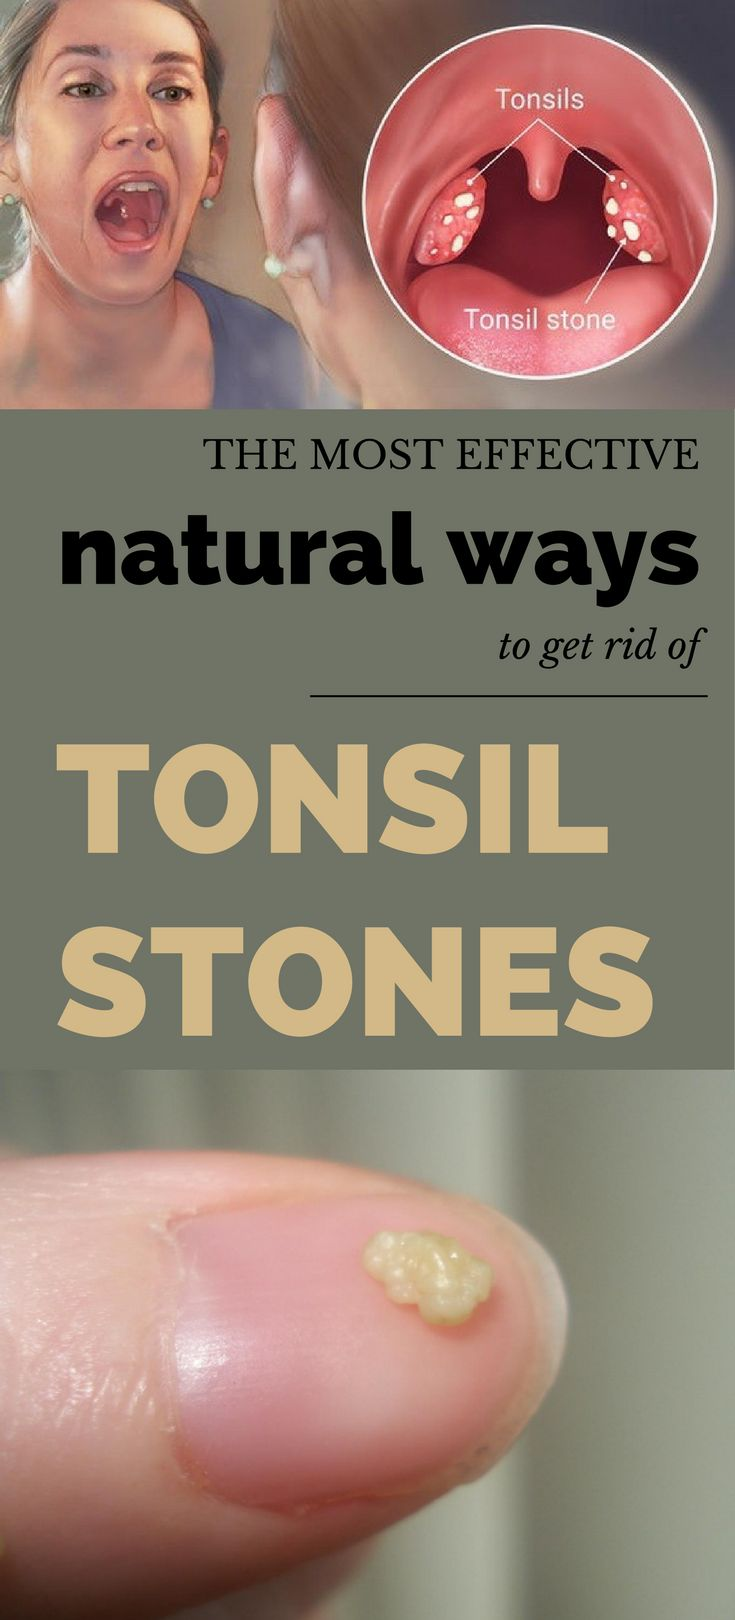 Natural Ways To Get Rid Of Tonsil Stones